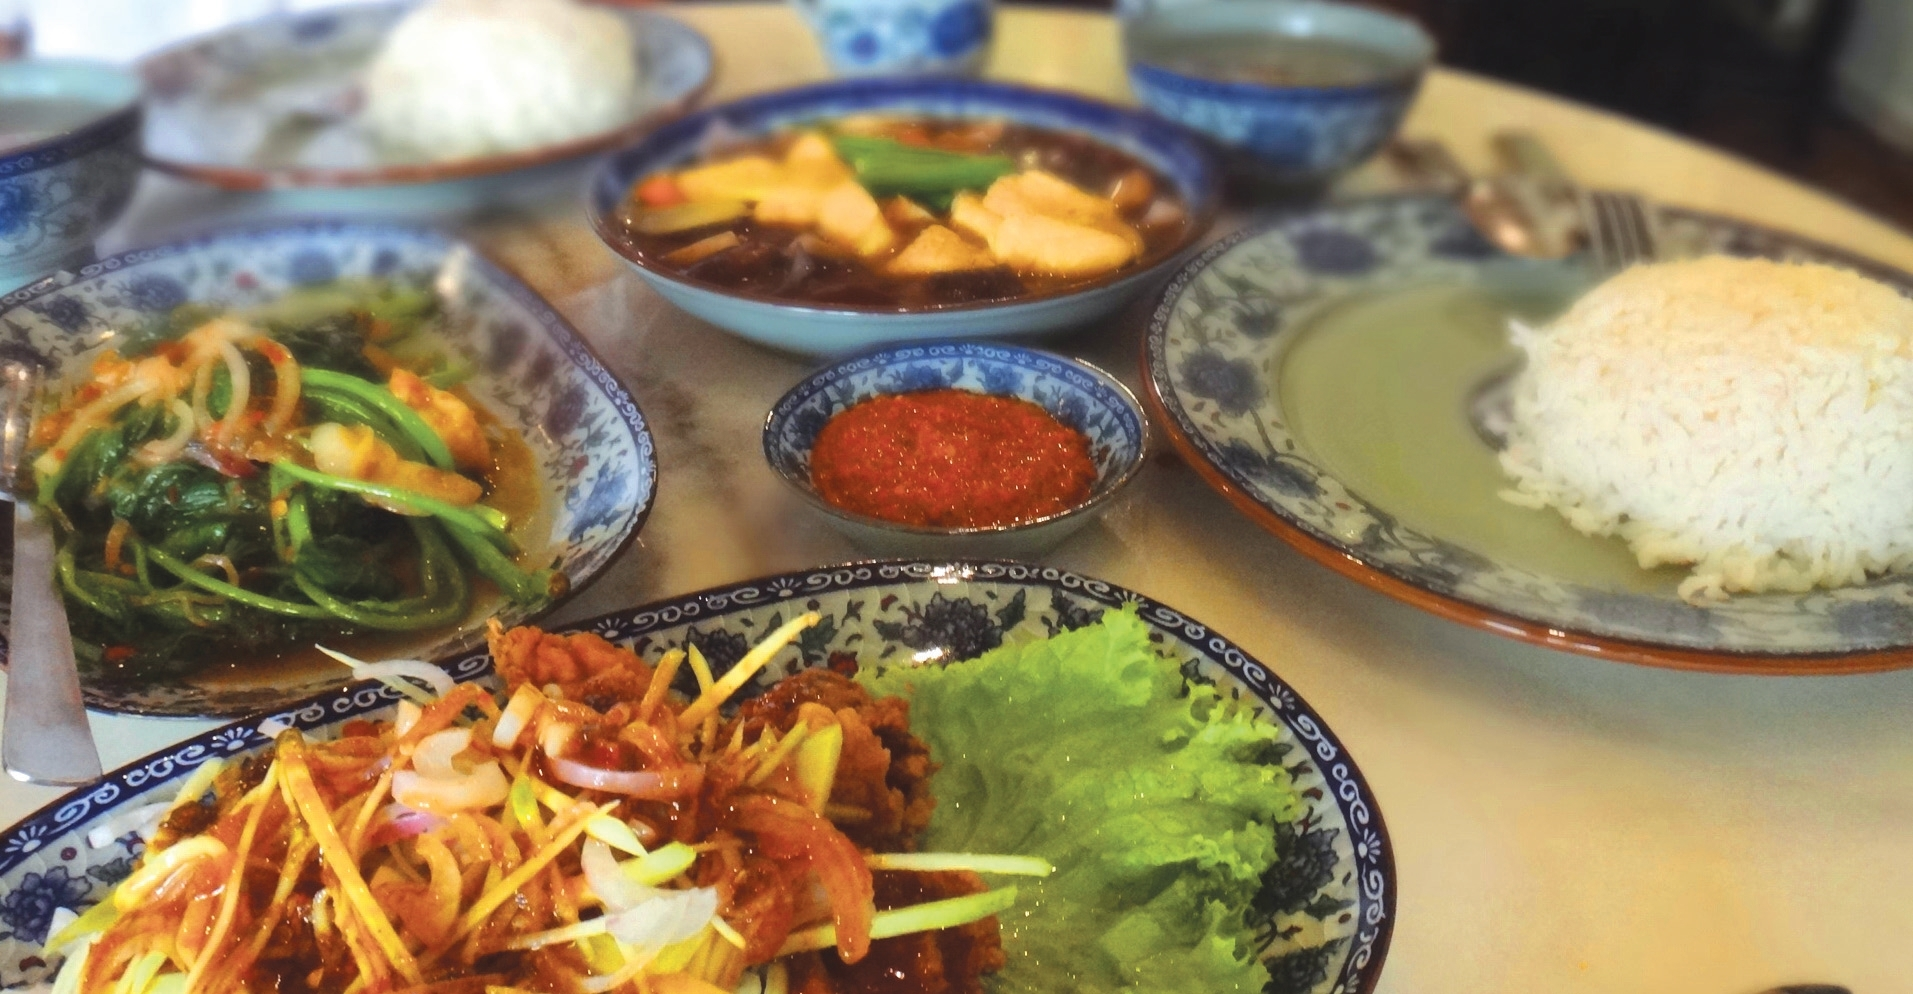 Discover Penang Peranakan culture through Nyonya cuisine